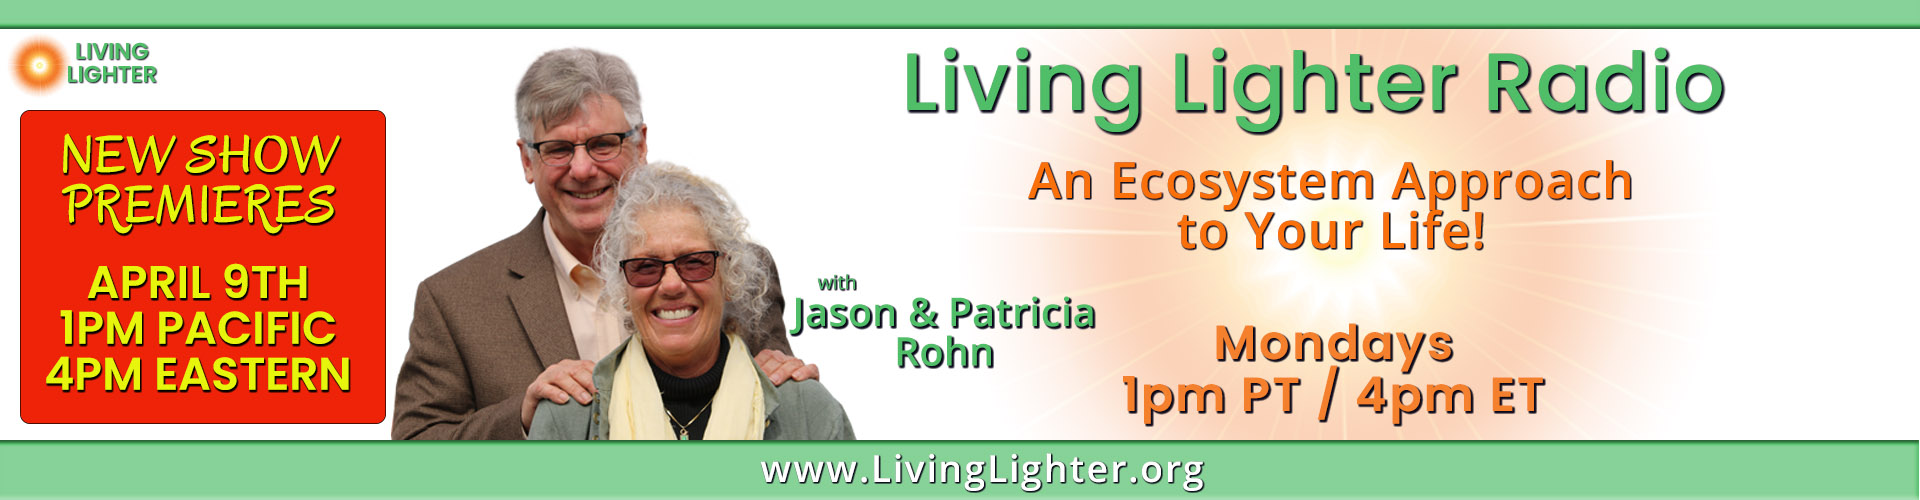 Premiere of Living Lighter Radio with Jason & Patricia Rohn April 9th